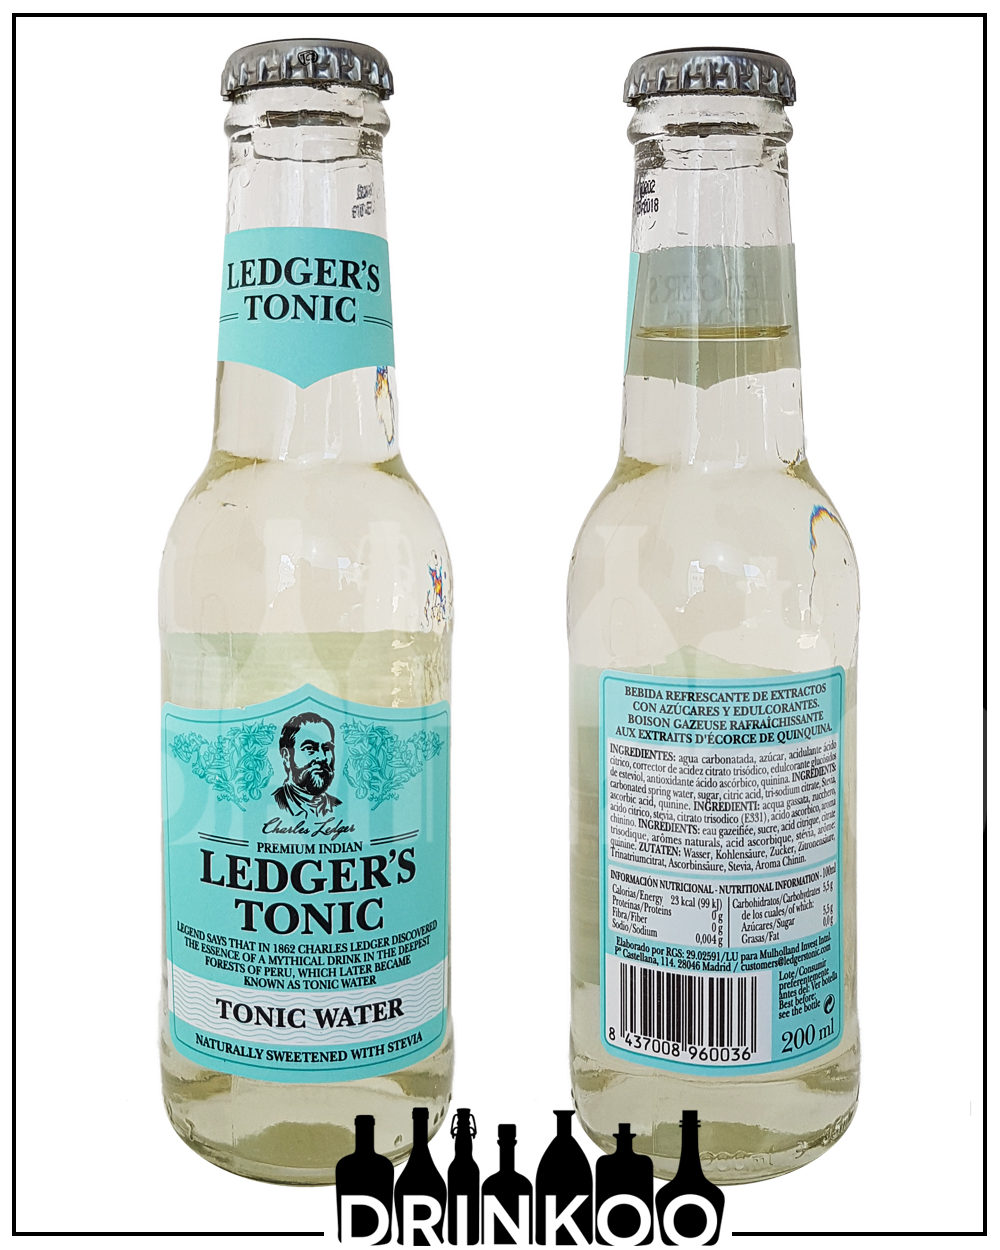 Ledgers Tonic Water